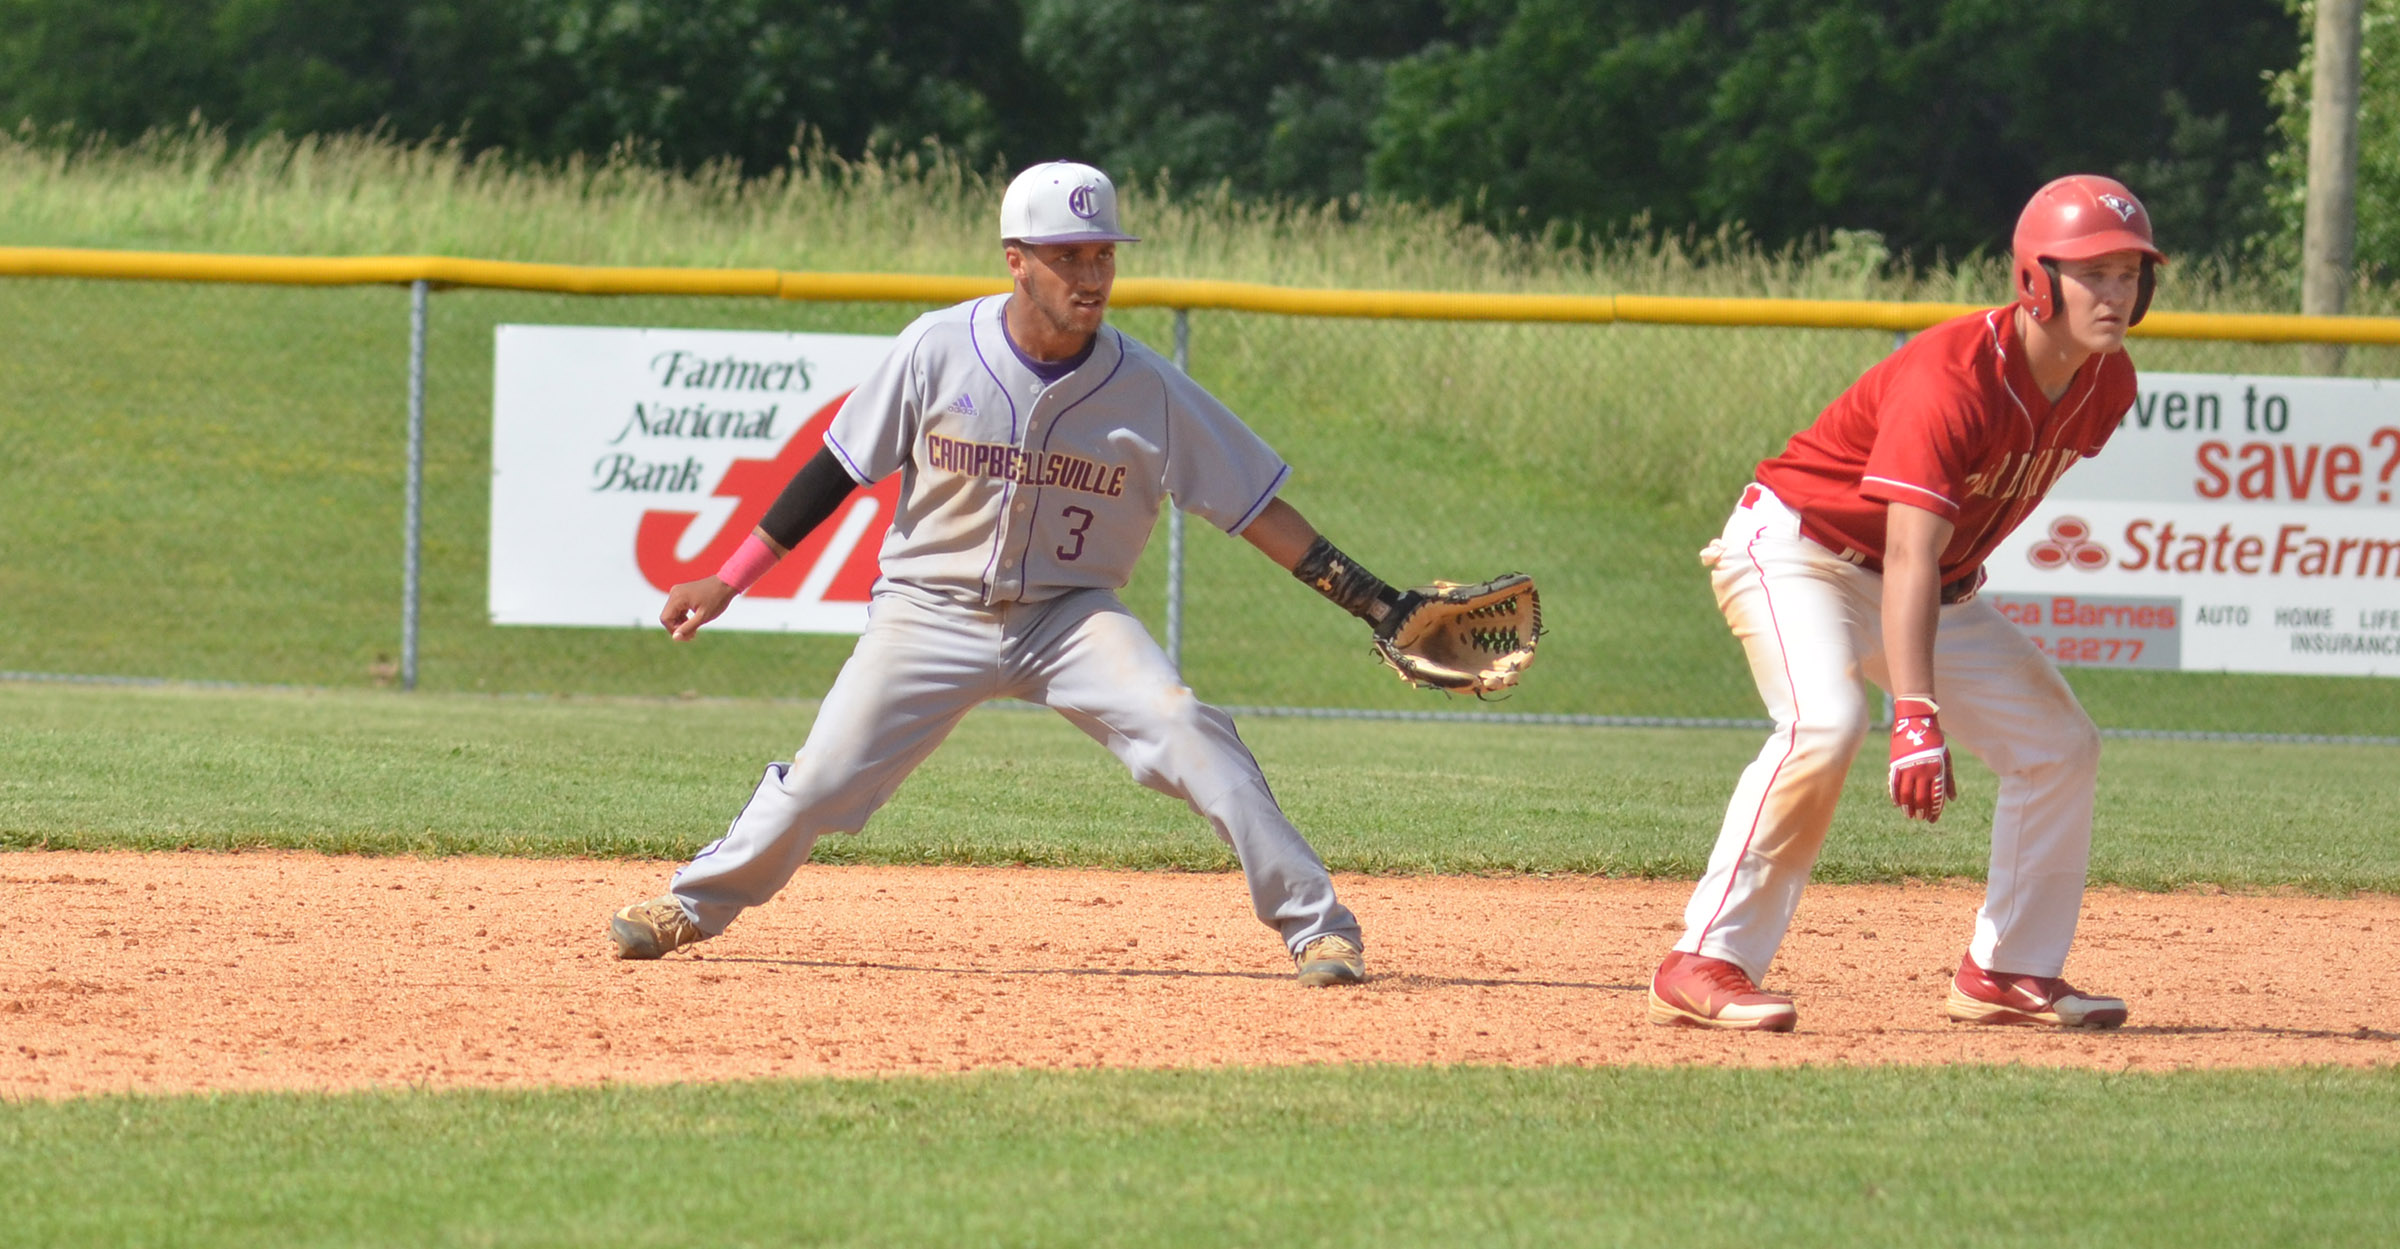 CHS junior Ethan Lay keeps the runner close at second.